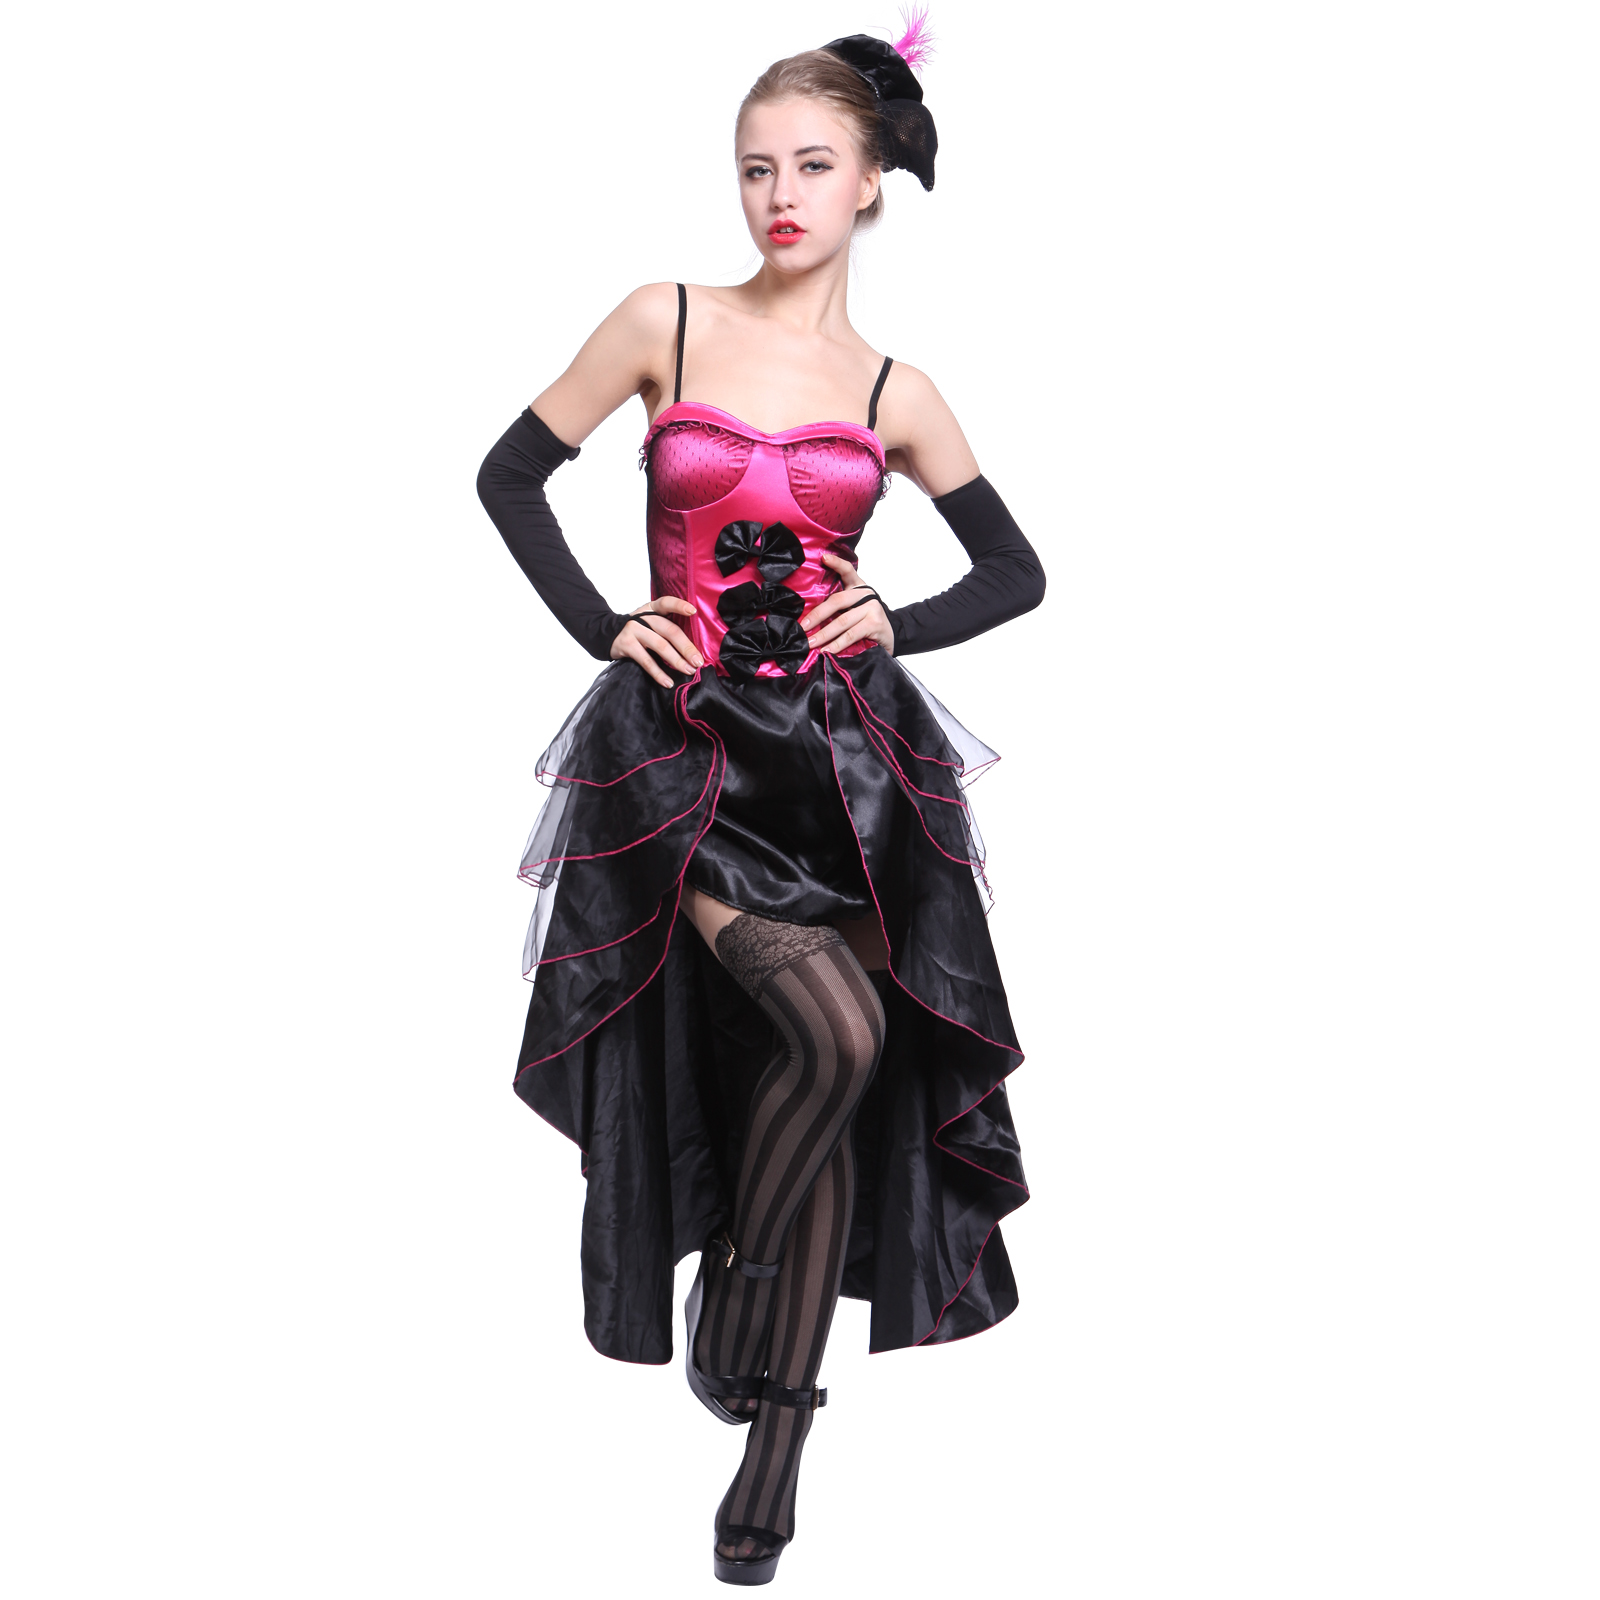 moulin rouge showgirl dancer fancy dress can can - Can Can Dancer Halloween Costume